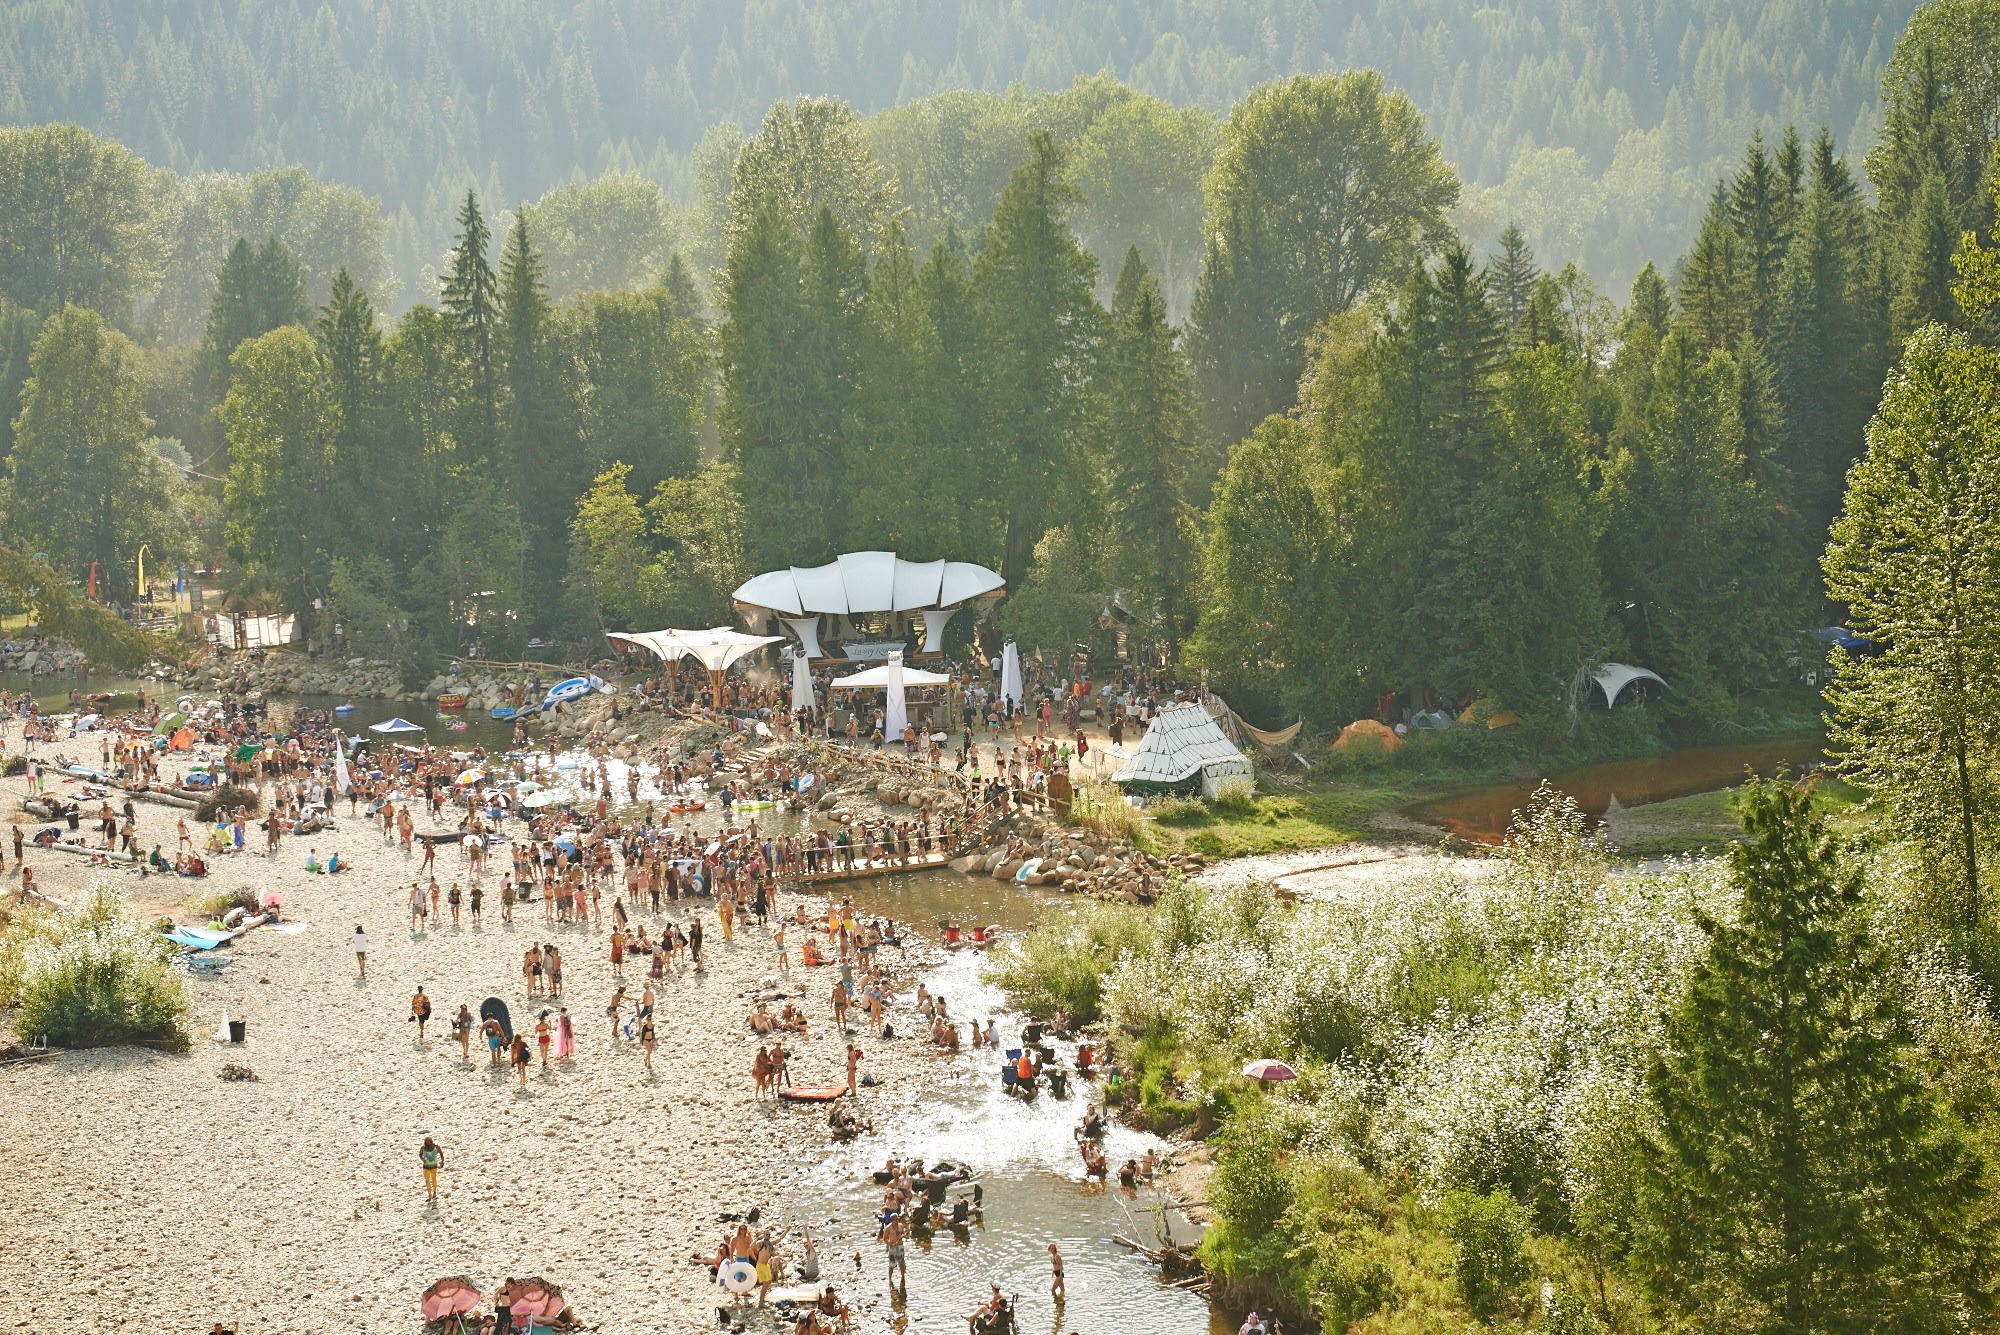 Shambhala Music Festival Announces Early Closure Due To WildFires